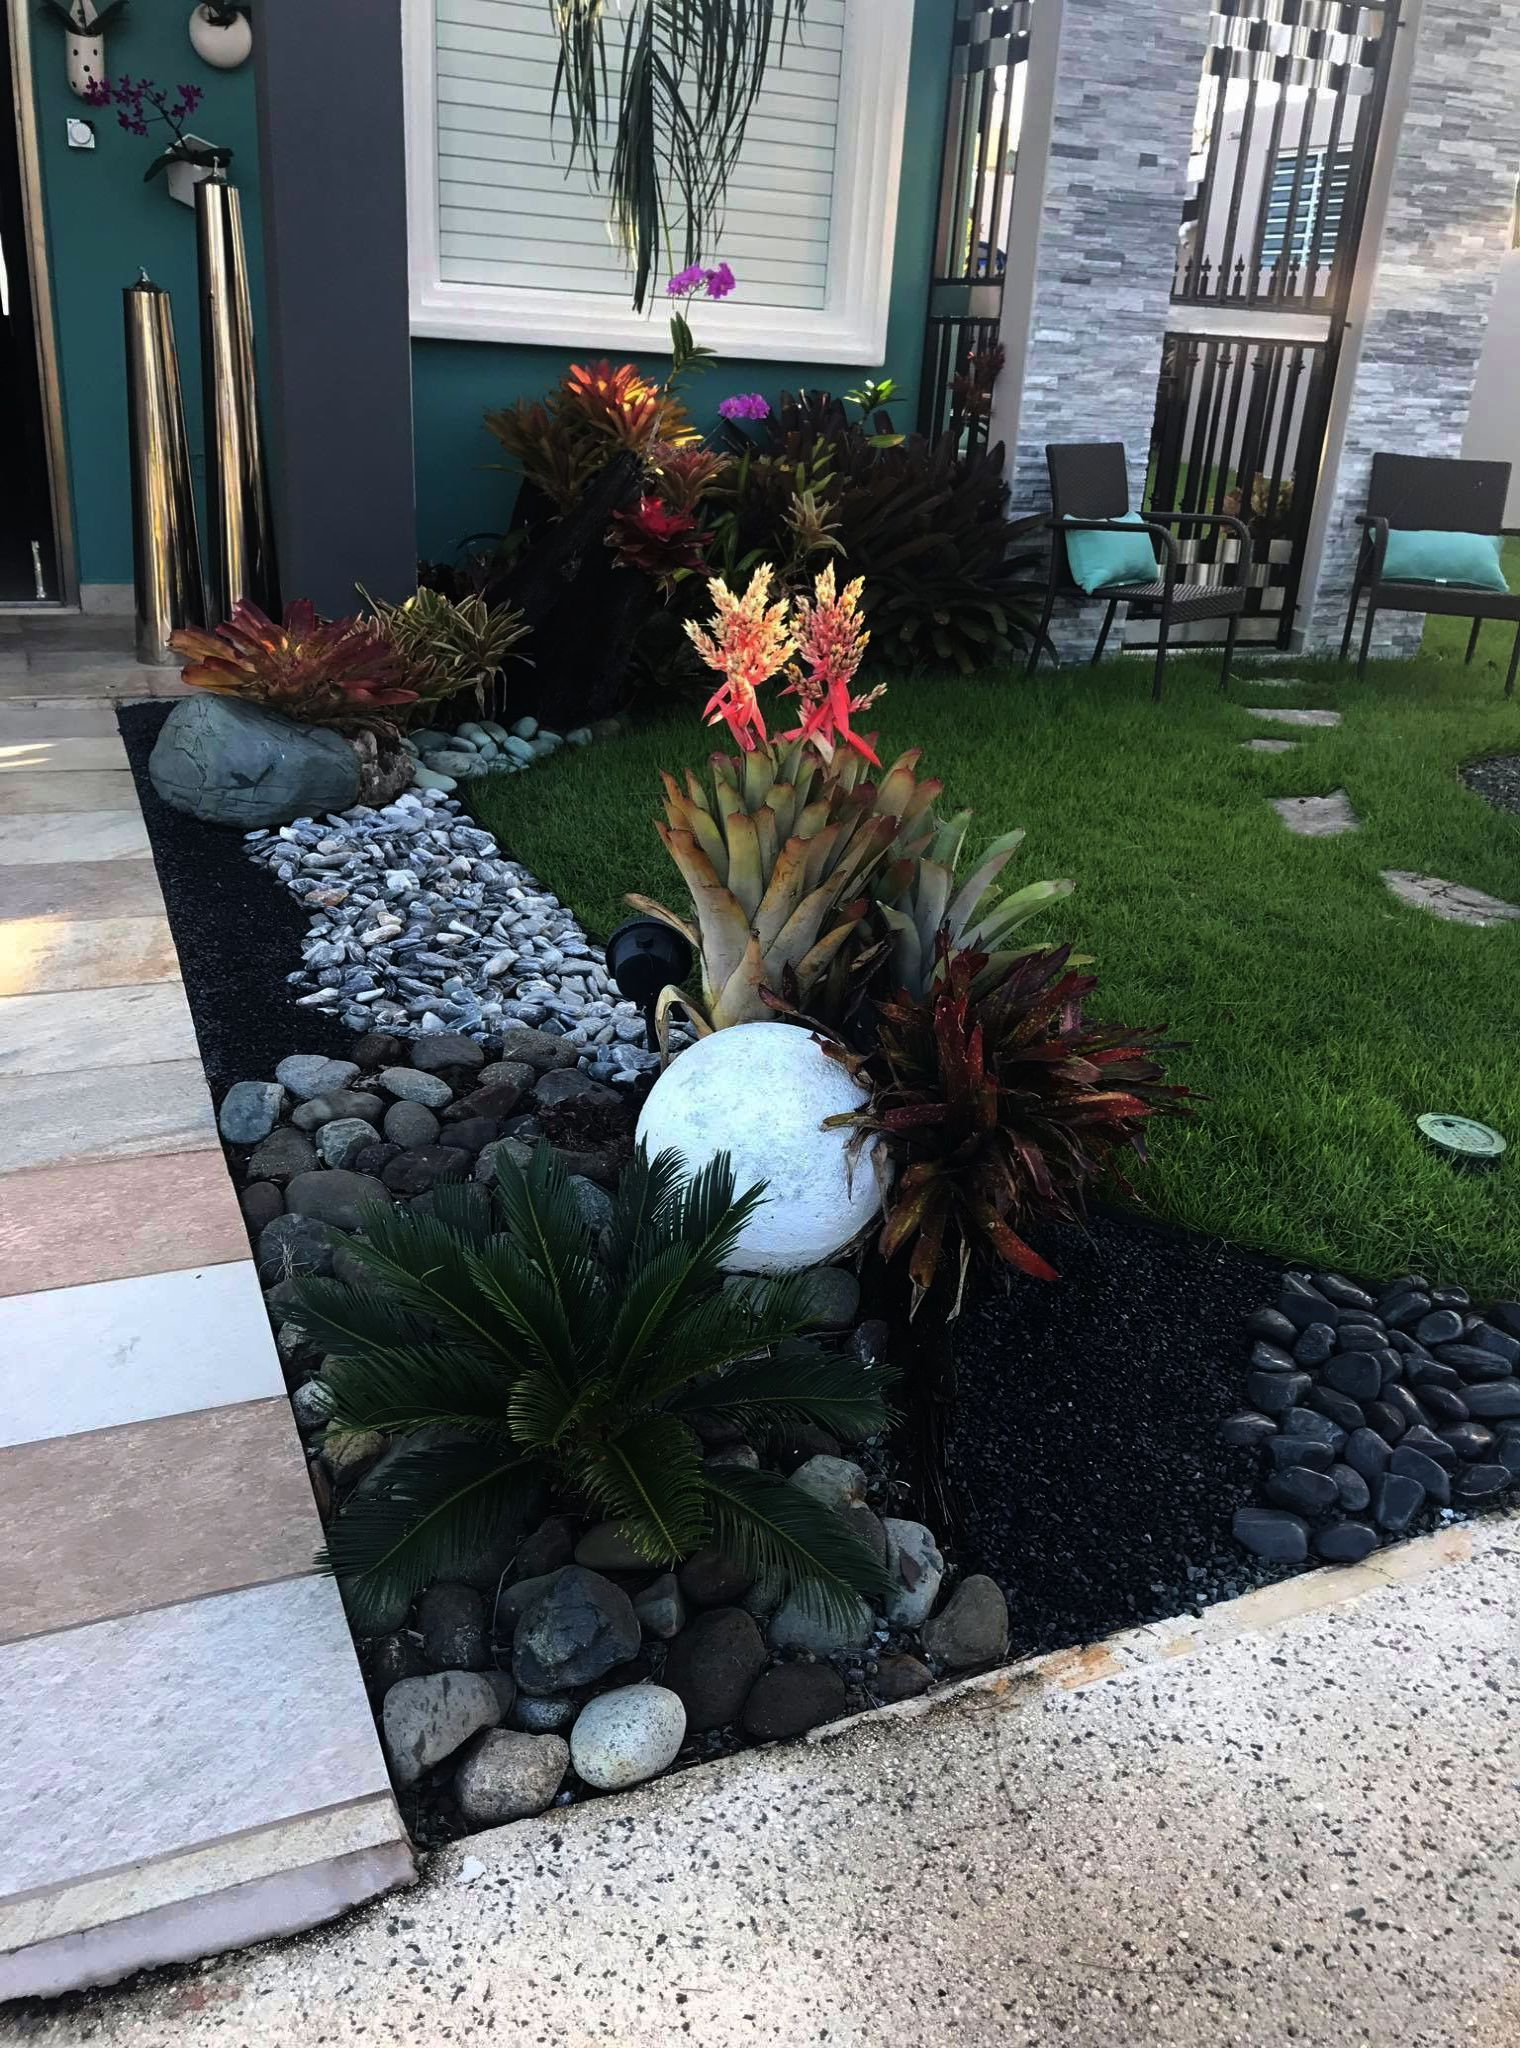 Landscape Gardening Omagh Than Landscape Gardening Definition With Landscape Ideas For P Front Yard Garden Design Small Front Yard Landscaping Easy Landscaping